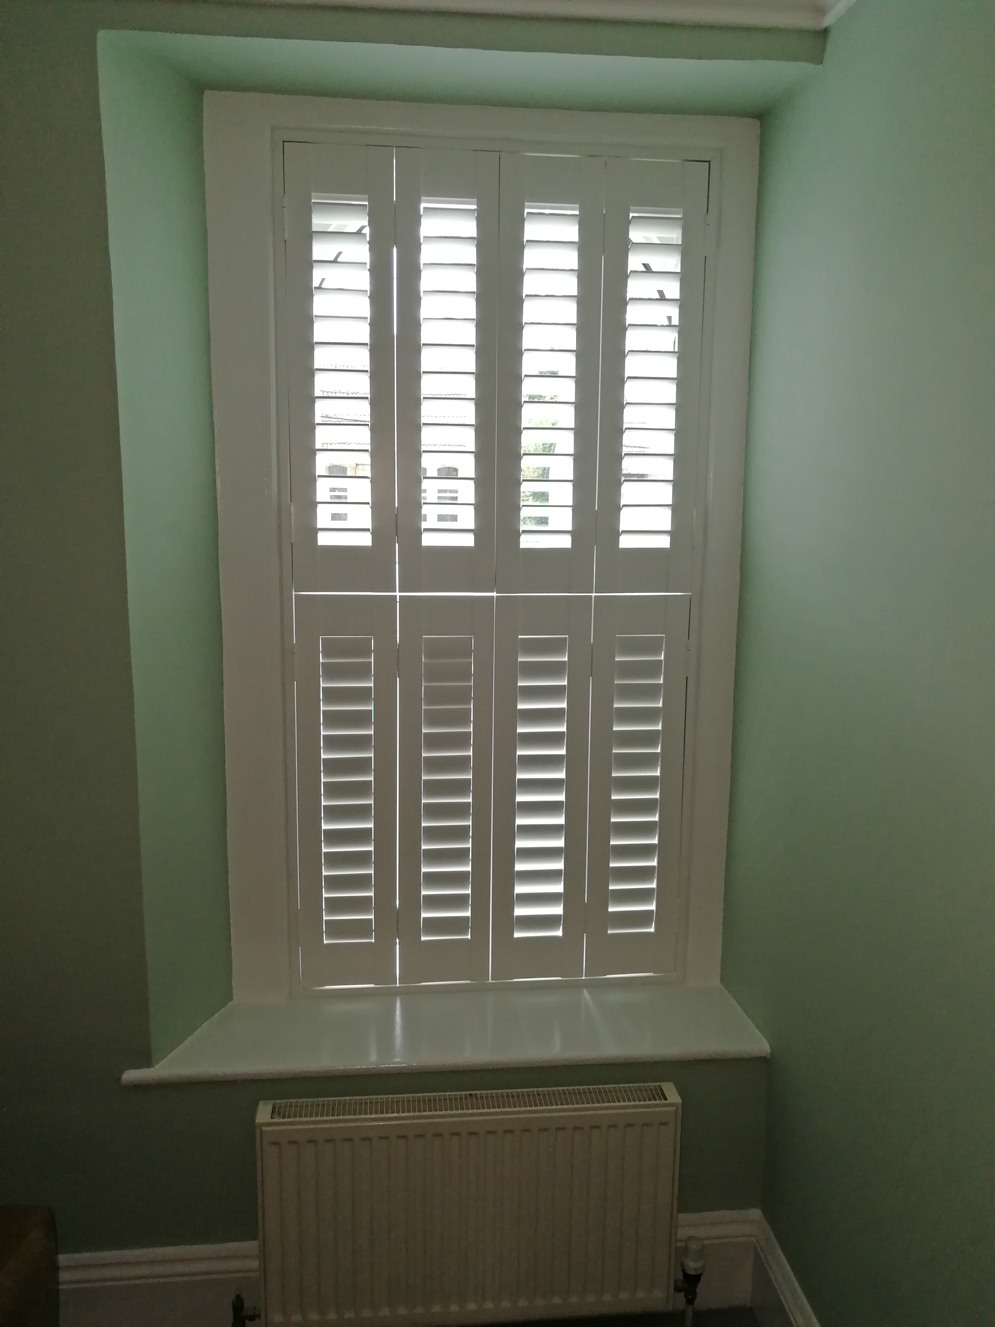 Shutters <div style='clear:both;width:100%;height:0px;'></div><span class='cat'>Previous Projects, Shutters, Shutters</span>